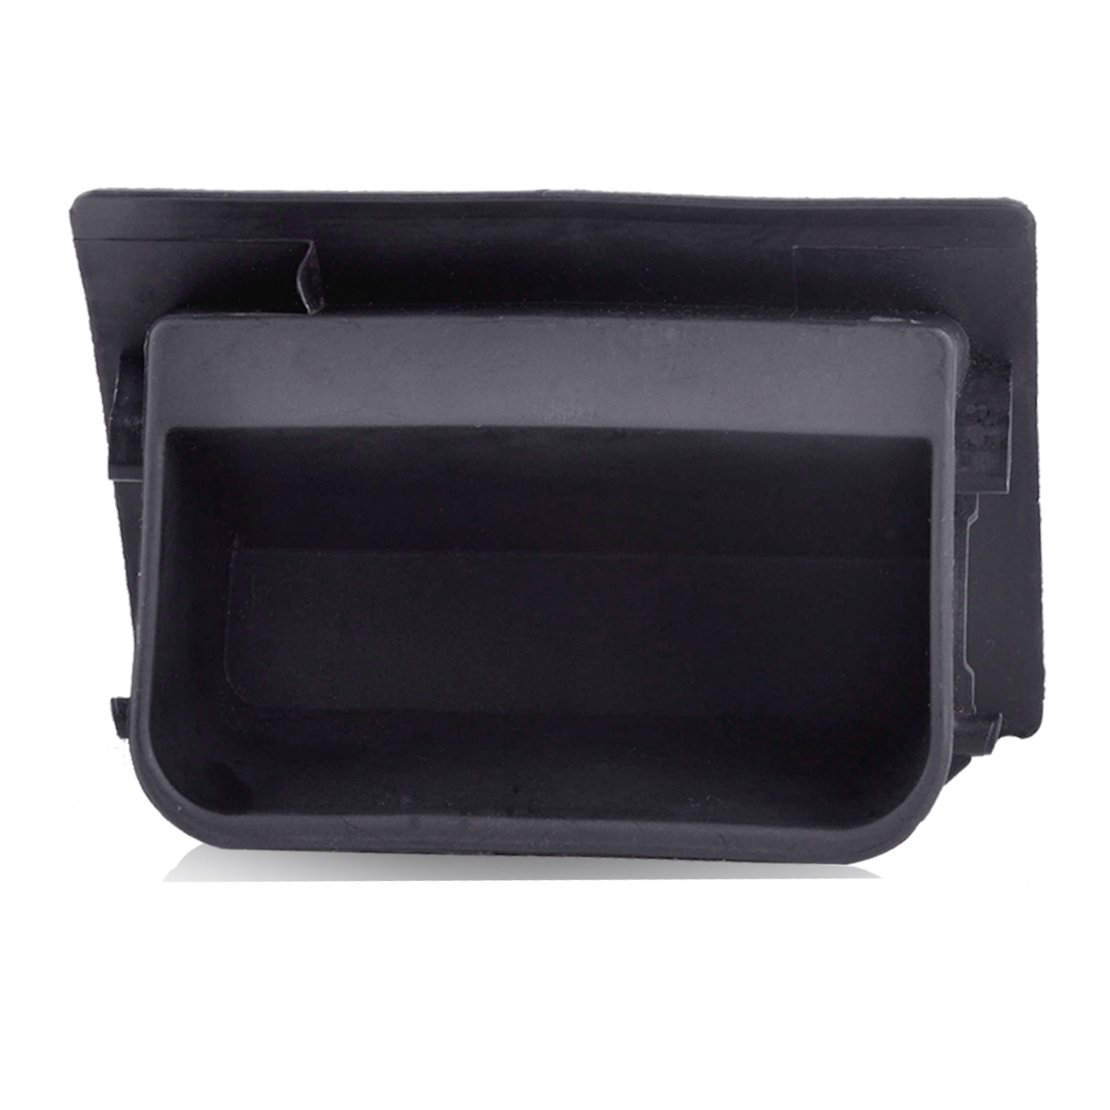 Beler Car Interior Inner Fuse Box Storage Tray Coin Container Holder Old Holders For Subaru Xv Forester Impreza